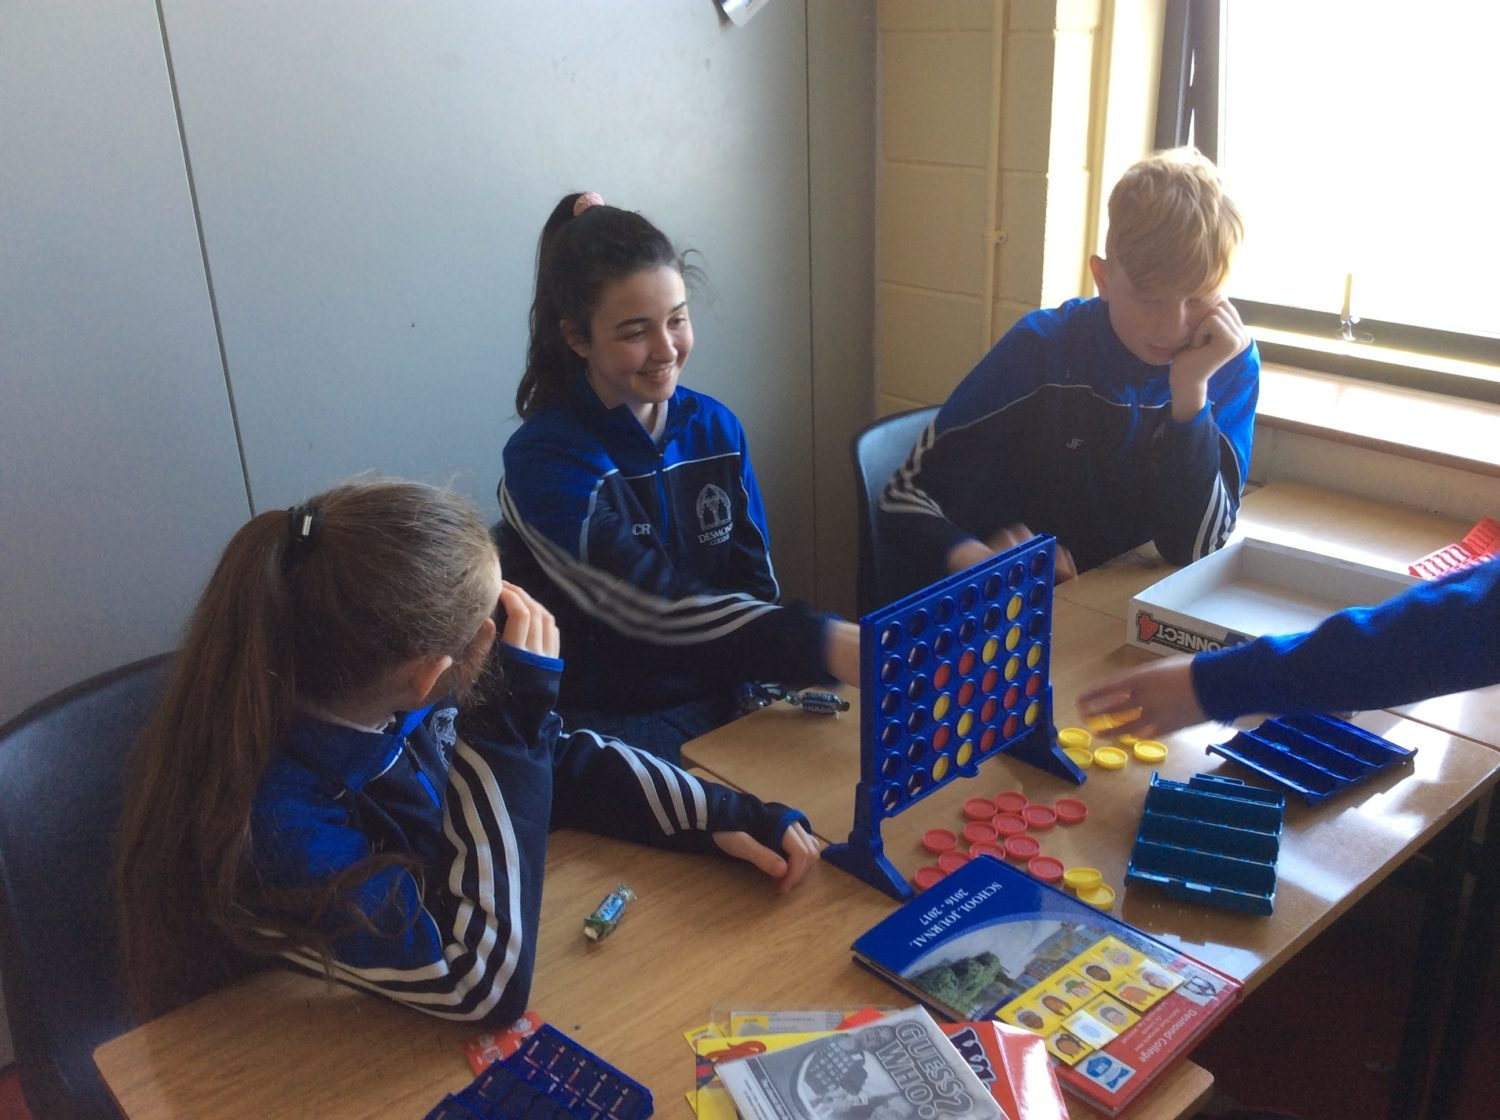 Márta 2017: Desmond College School in Newcastle West had students enjoying themselves as they participated in Seachtain na Gaeilge activities